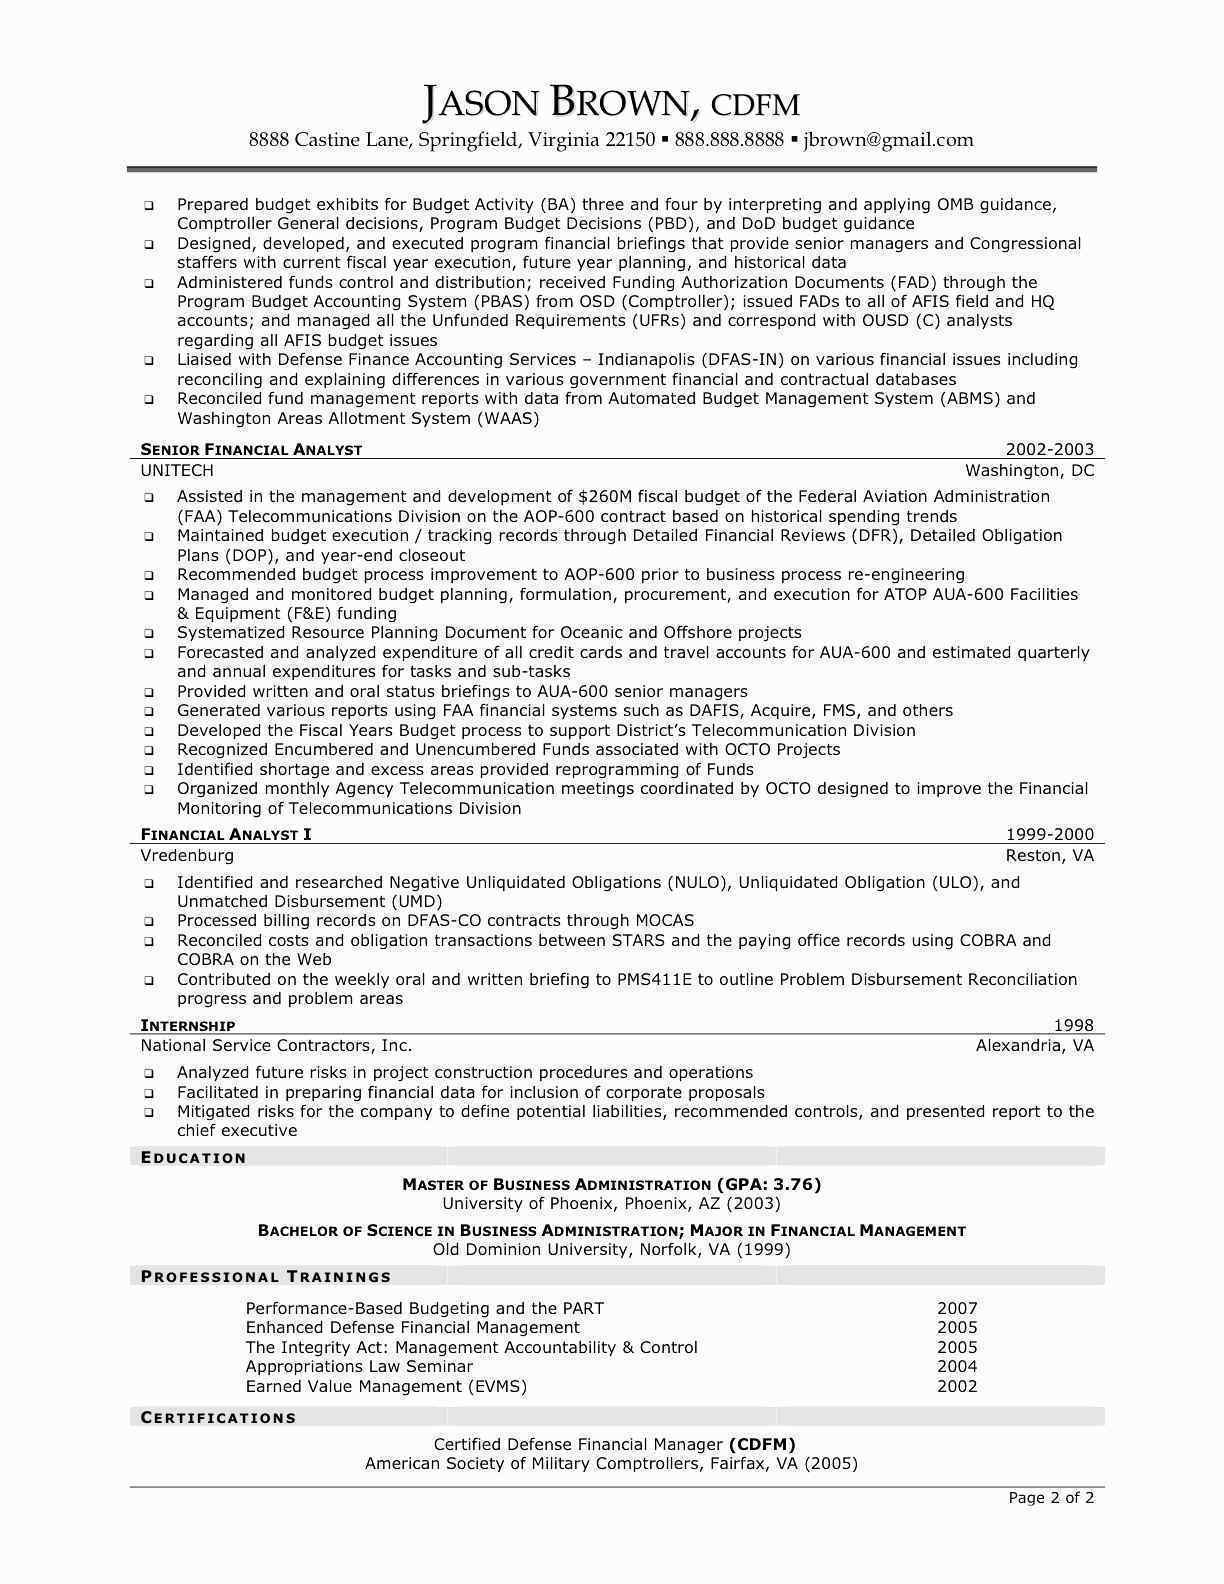 Resume Template Github - Resume Templates for Scholarships Elegant Scholarship Resume